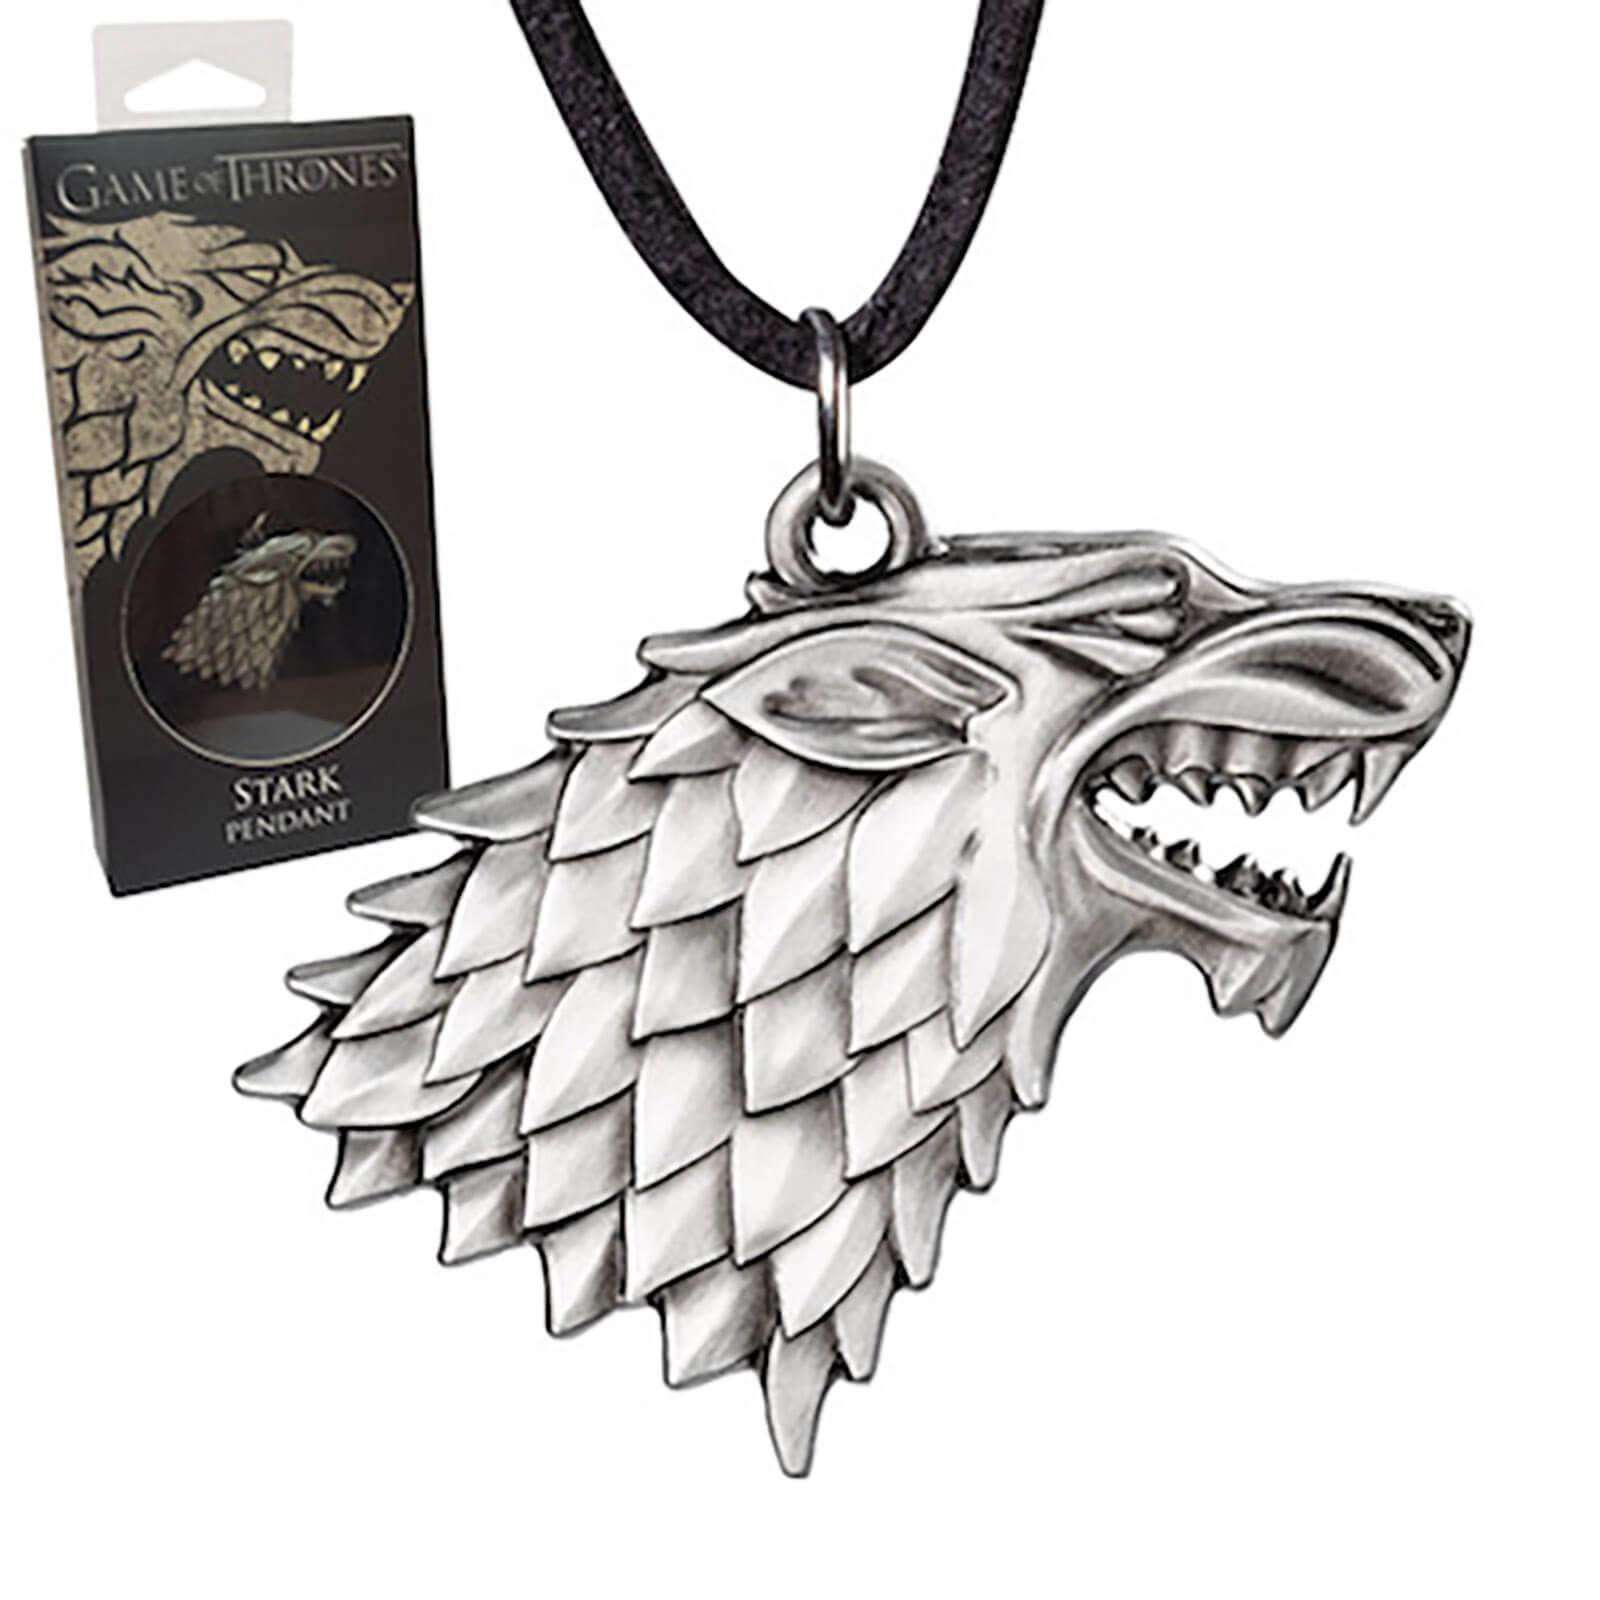 Noble Collection Game of Thrones Stark Sigil Pendant Costume Replica